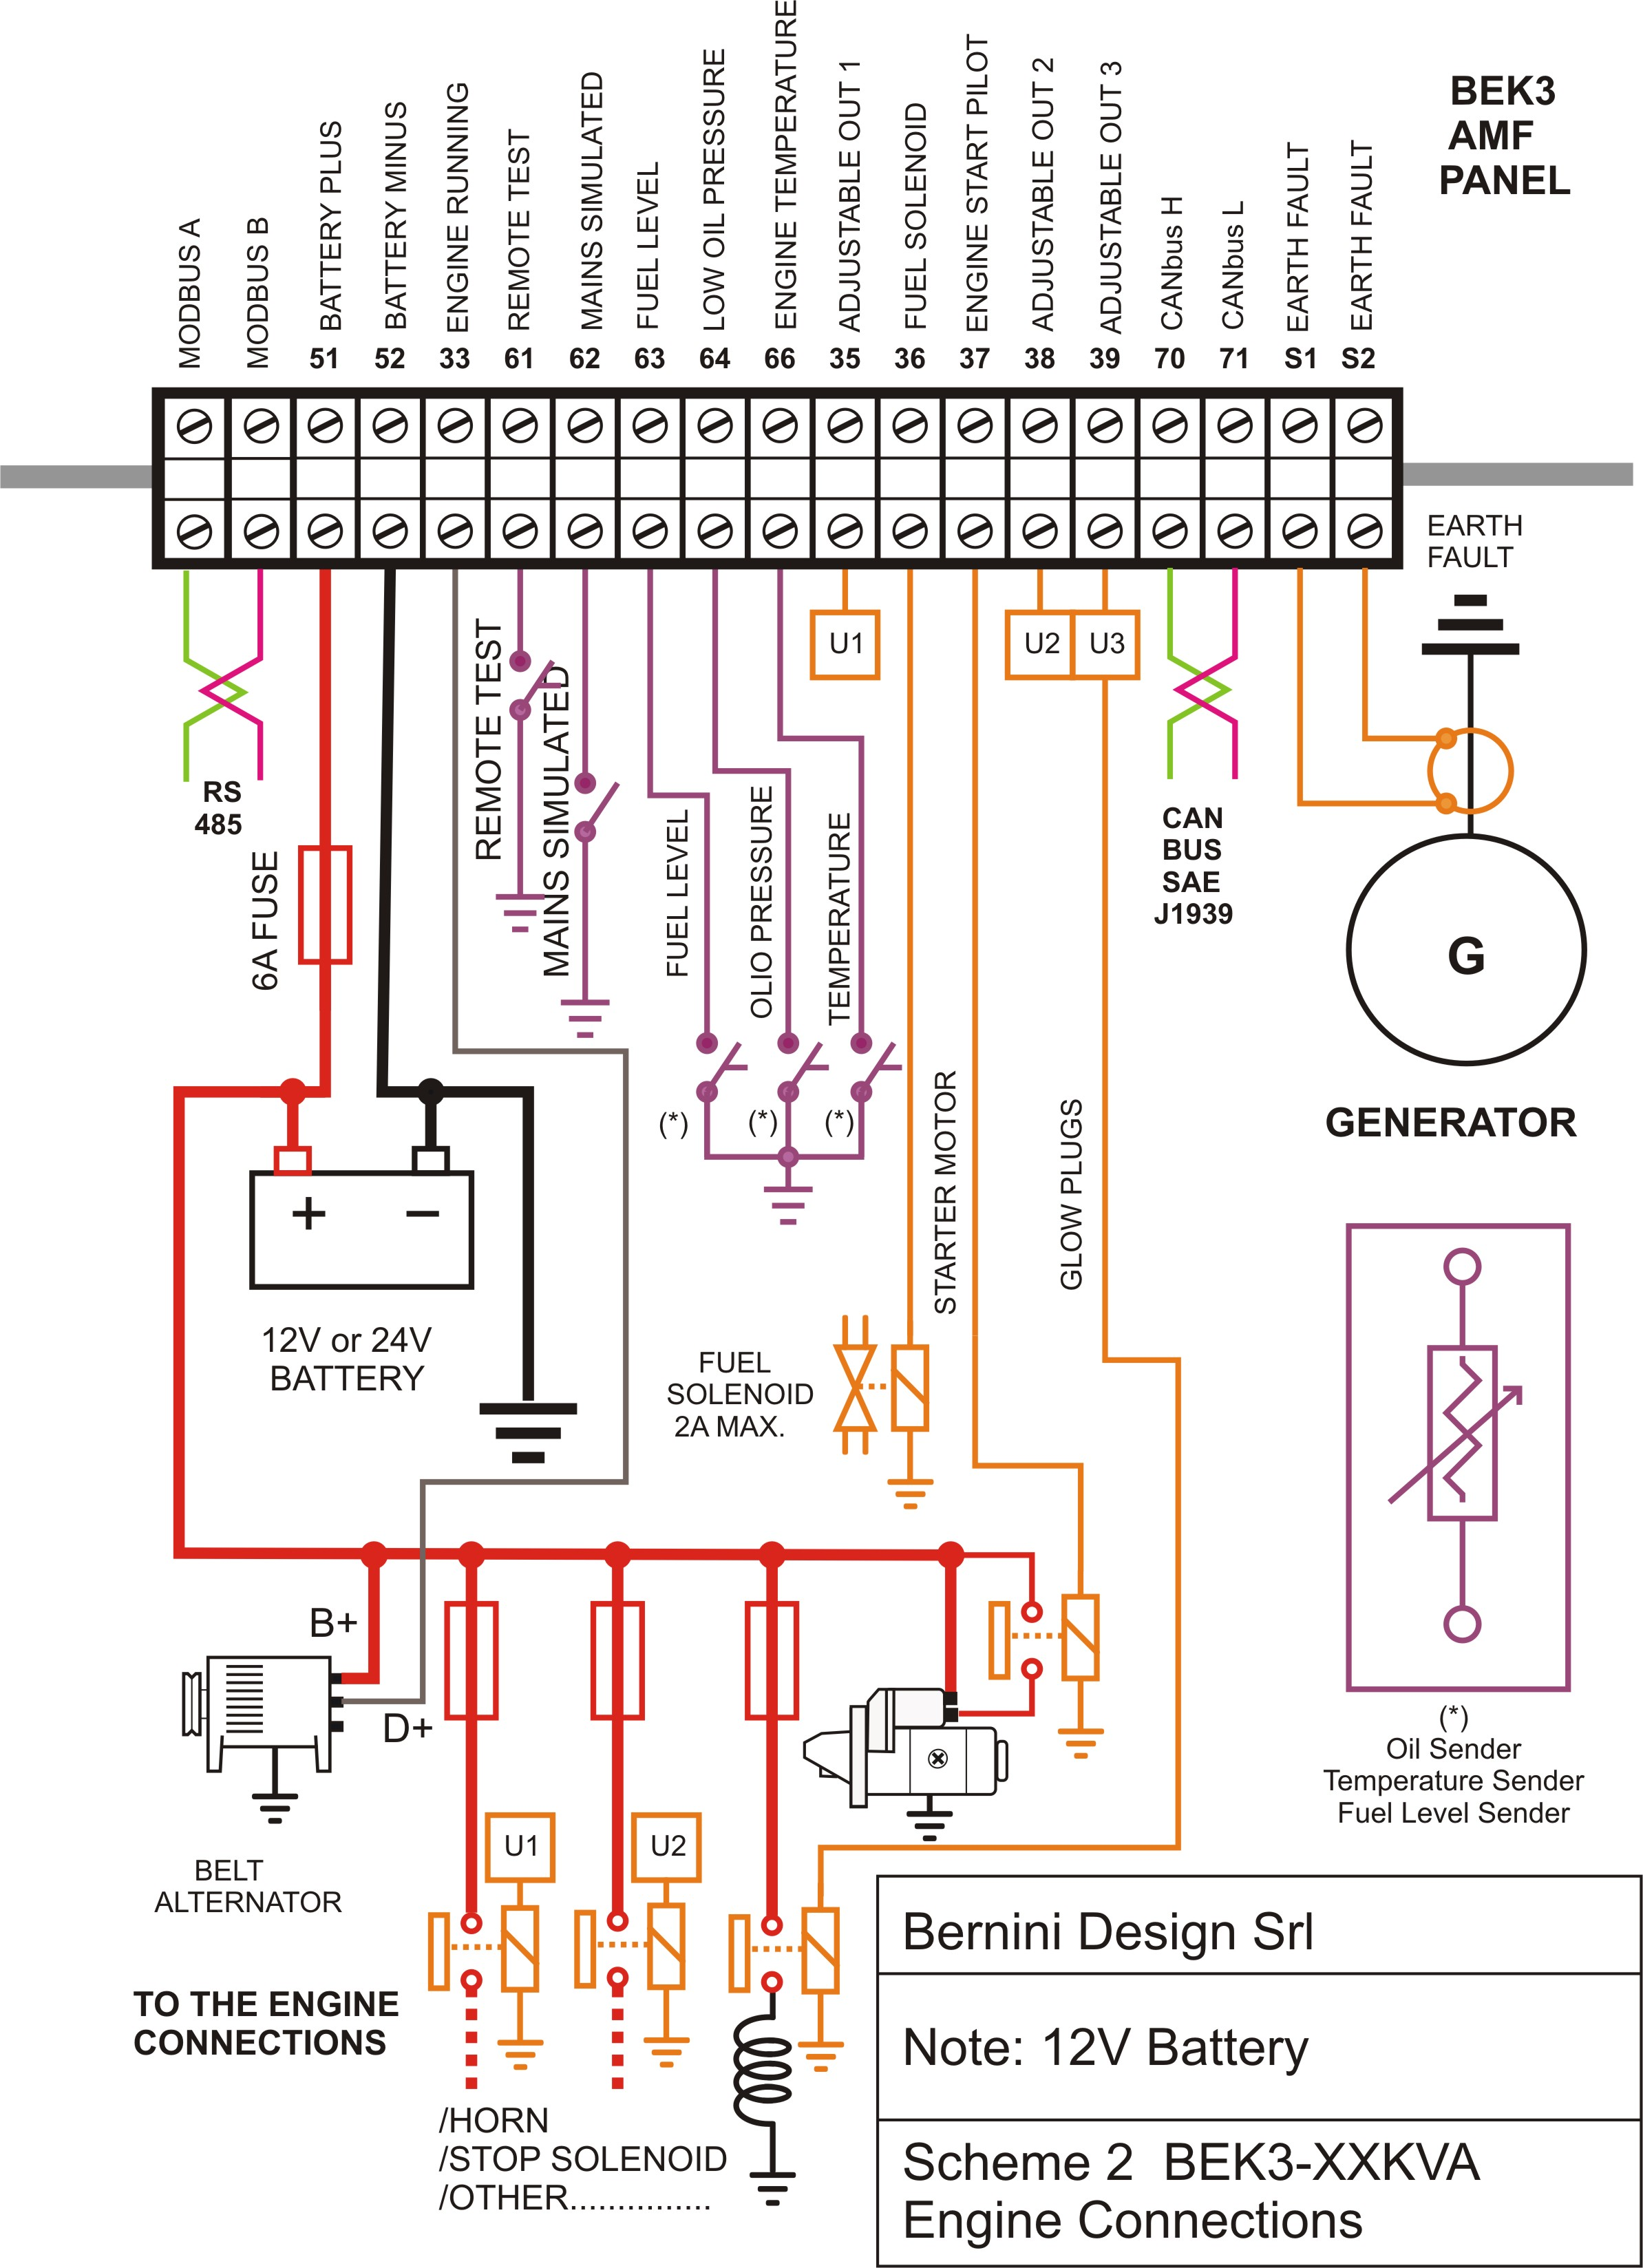 Diesel Generator Control Panel Wiring Diagram Engine Connections wiring diagram tool wiring color coding \u2022 free wiring diagrams niftylift 120 wiring diagram at suagrazia.org